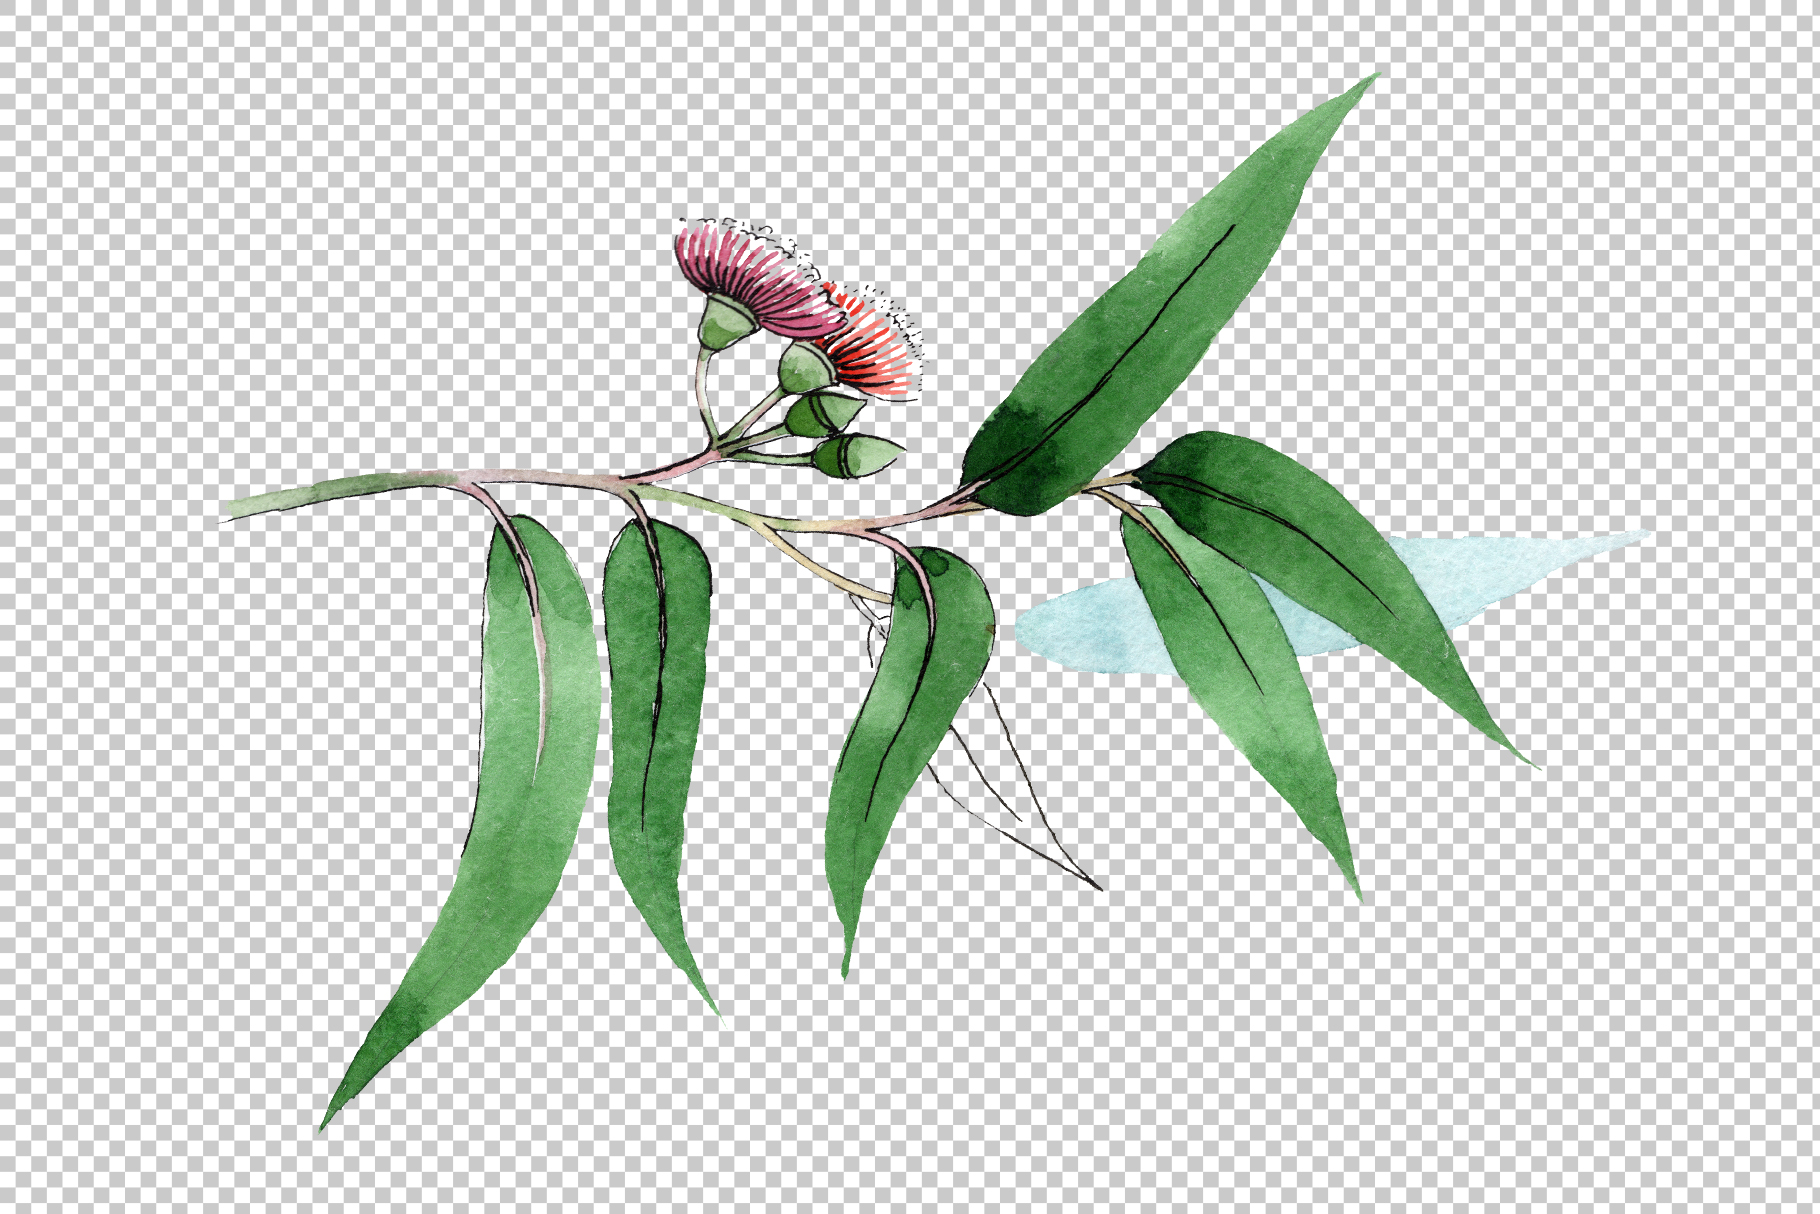 Download Free Eucalyptus Branch Watercolor Set Graphic By Mystocks Creative for Cricut Explore, Silhouette and other cutting machines.